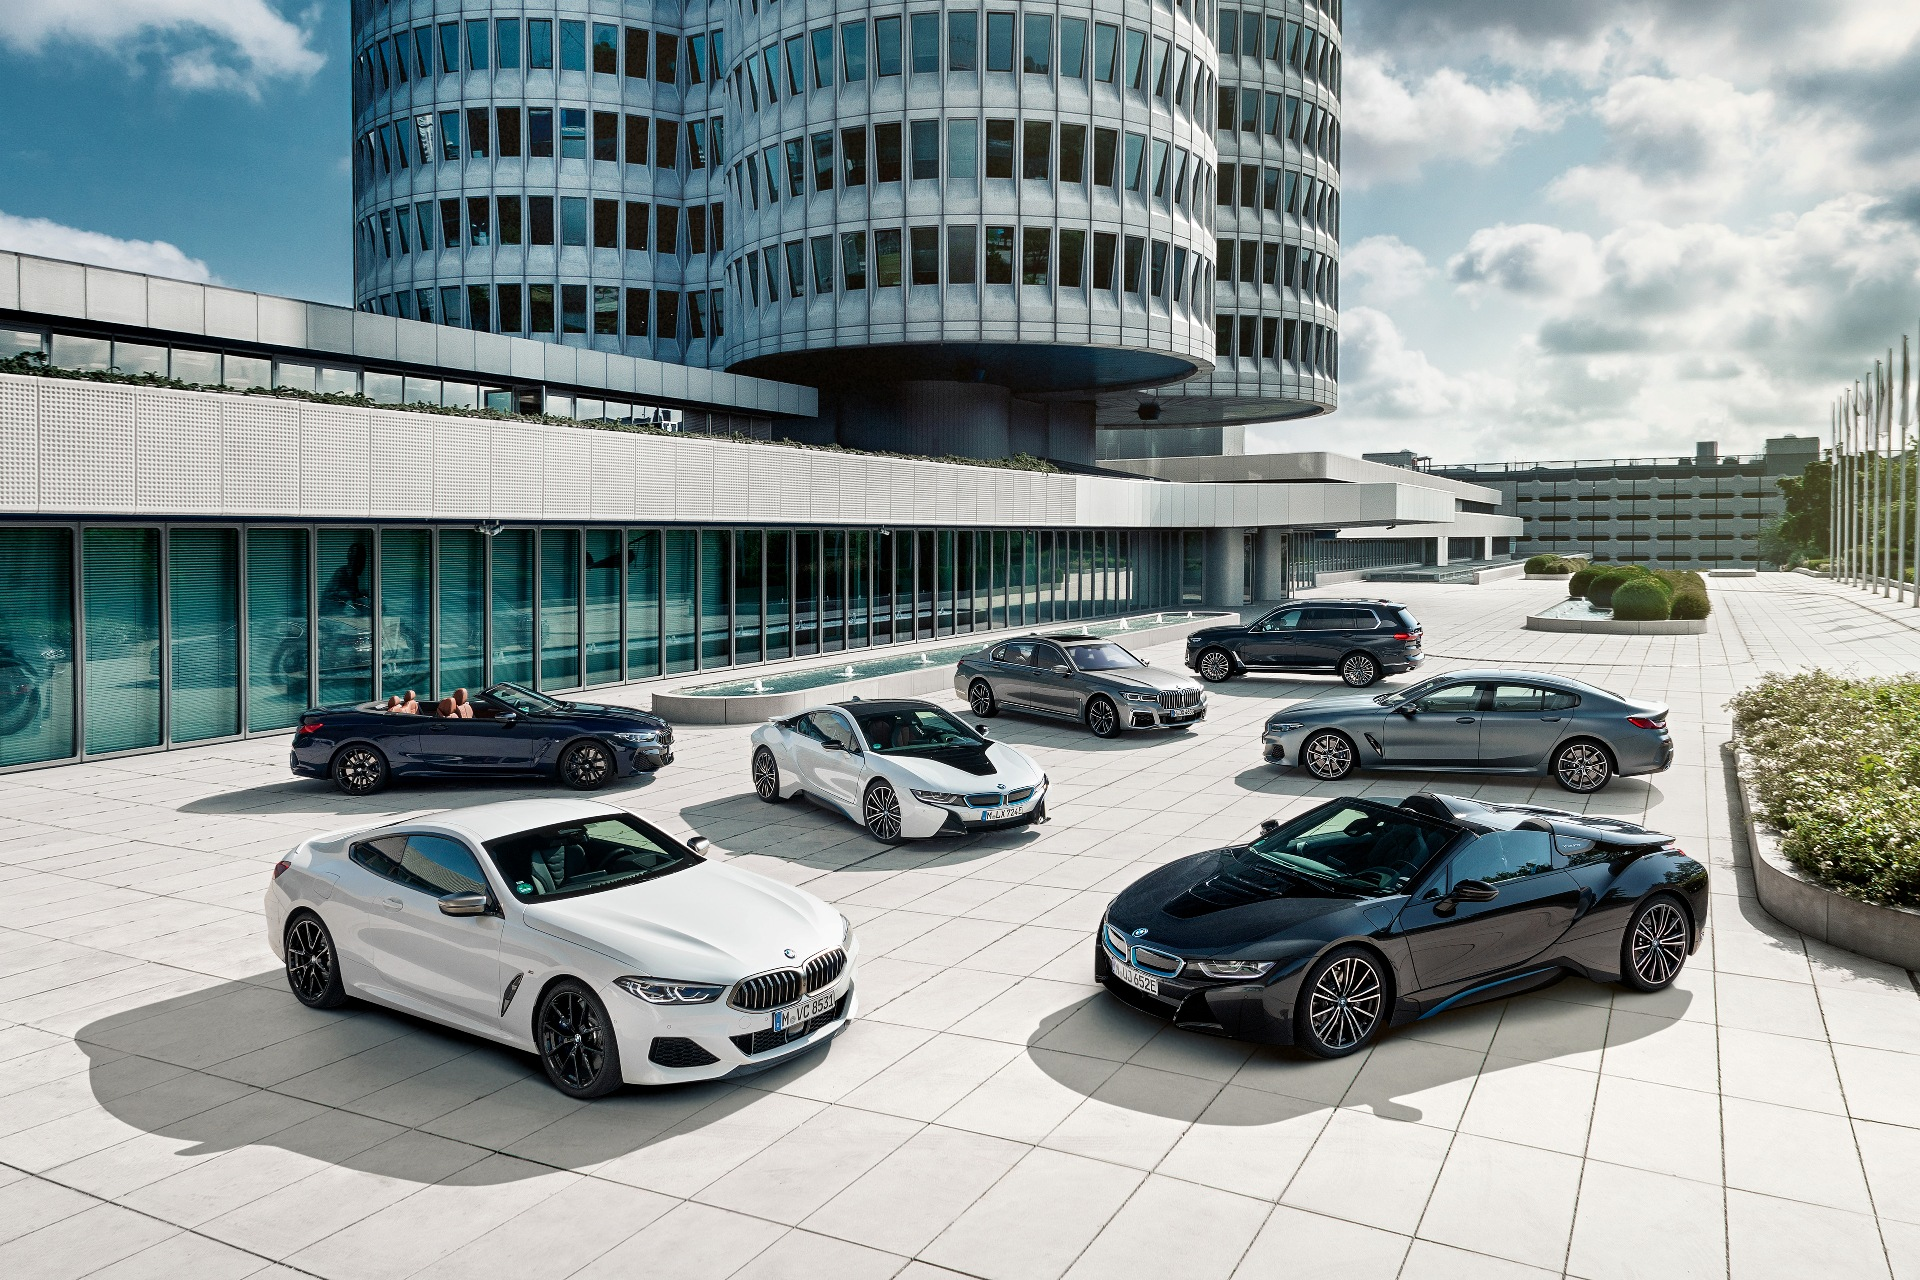 The BMW luxury class portfolio